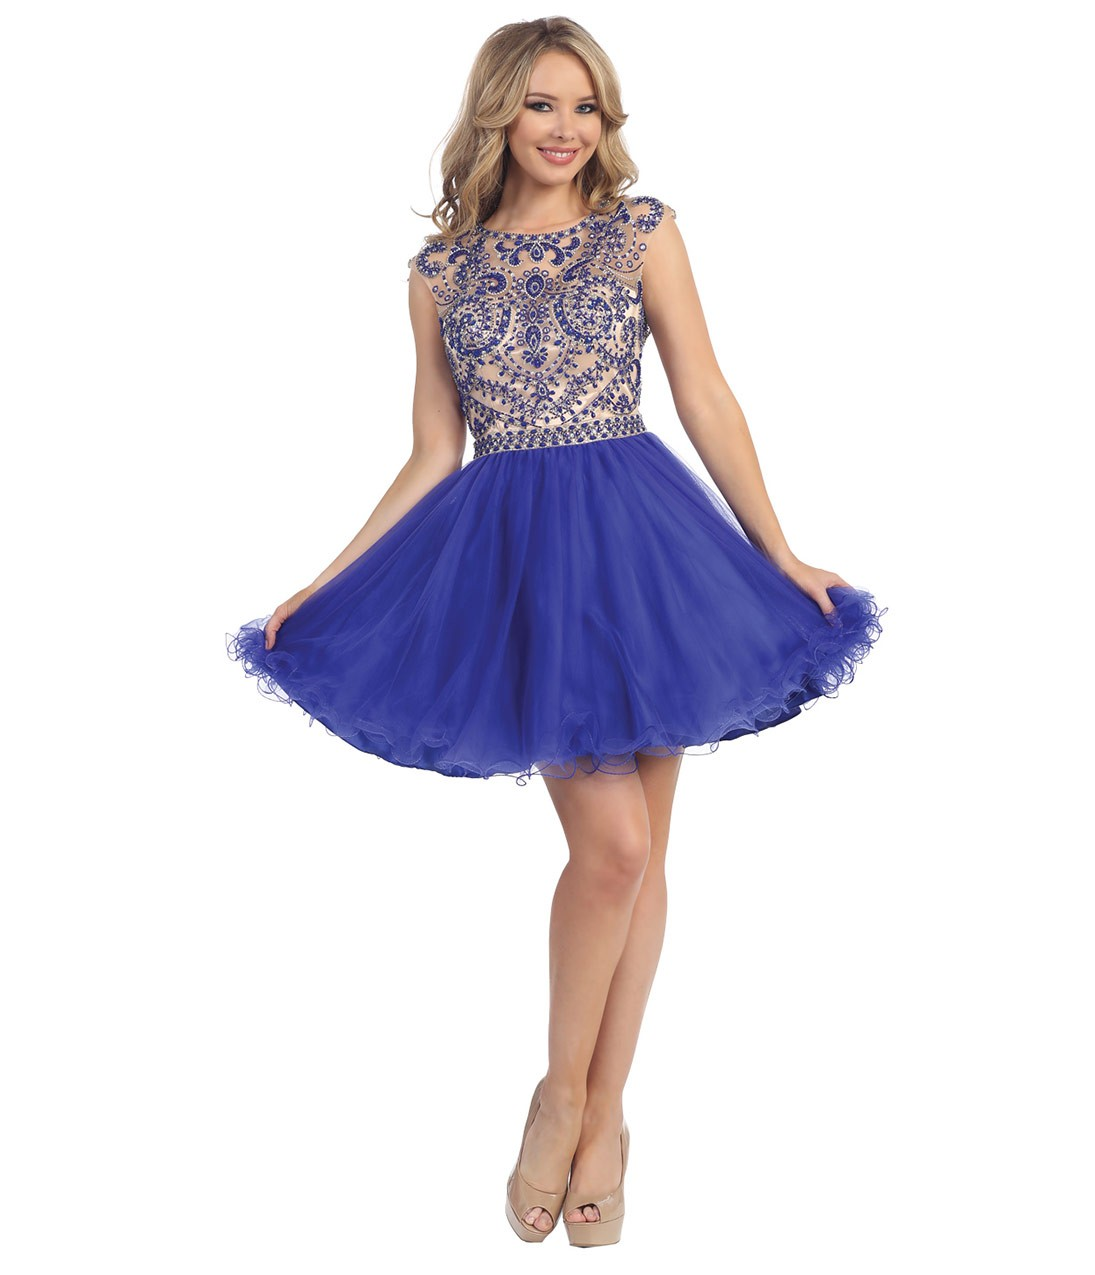 Sleeveless Bateau Neck Beaded Bodice Short Chiffon Prom Dress